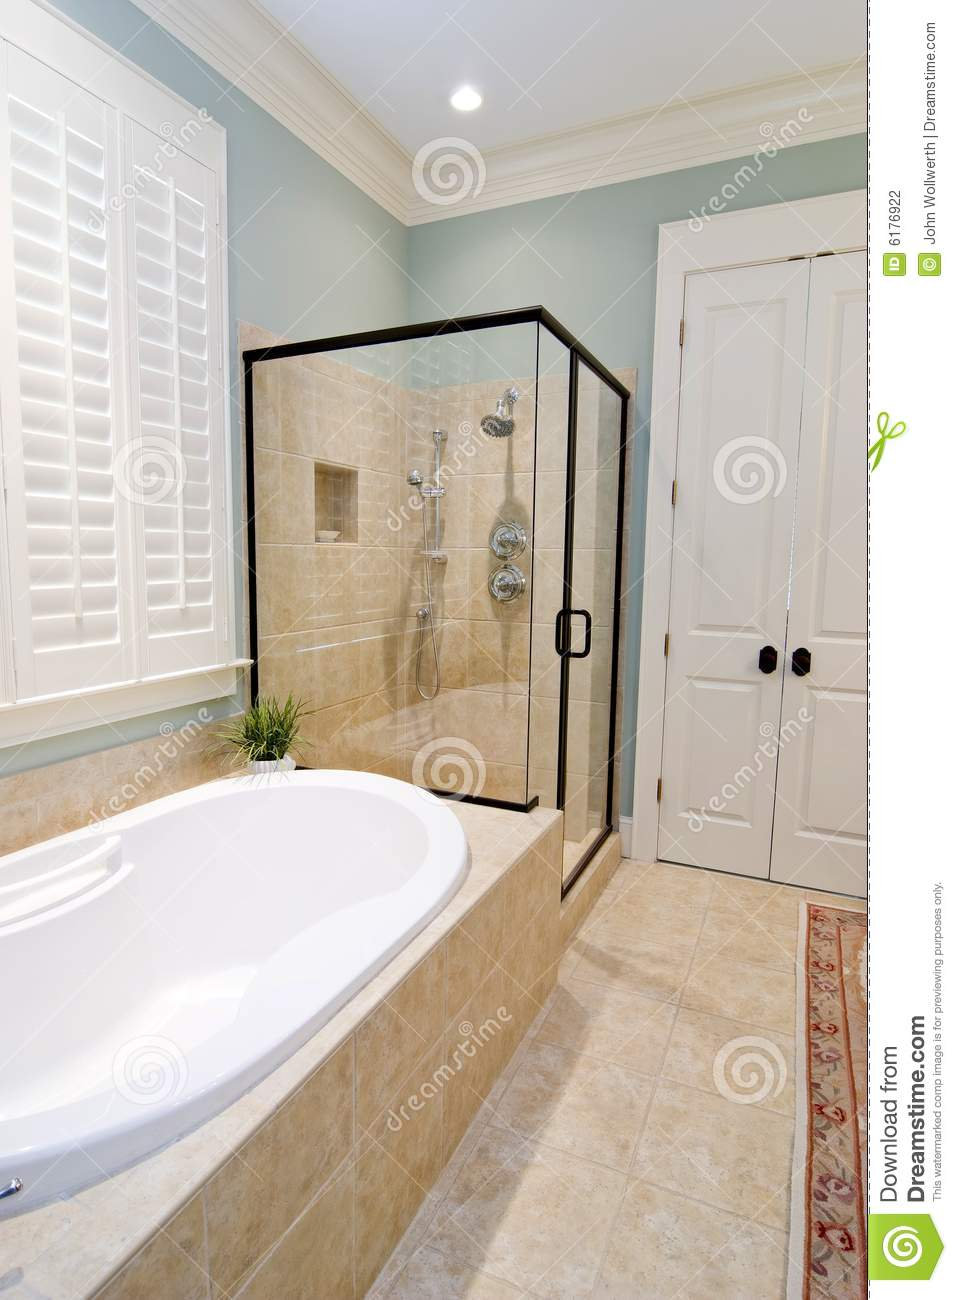 Bathroom with glass shower and tub stock photography image 6176922 Bathroom tile showers